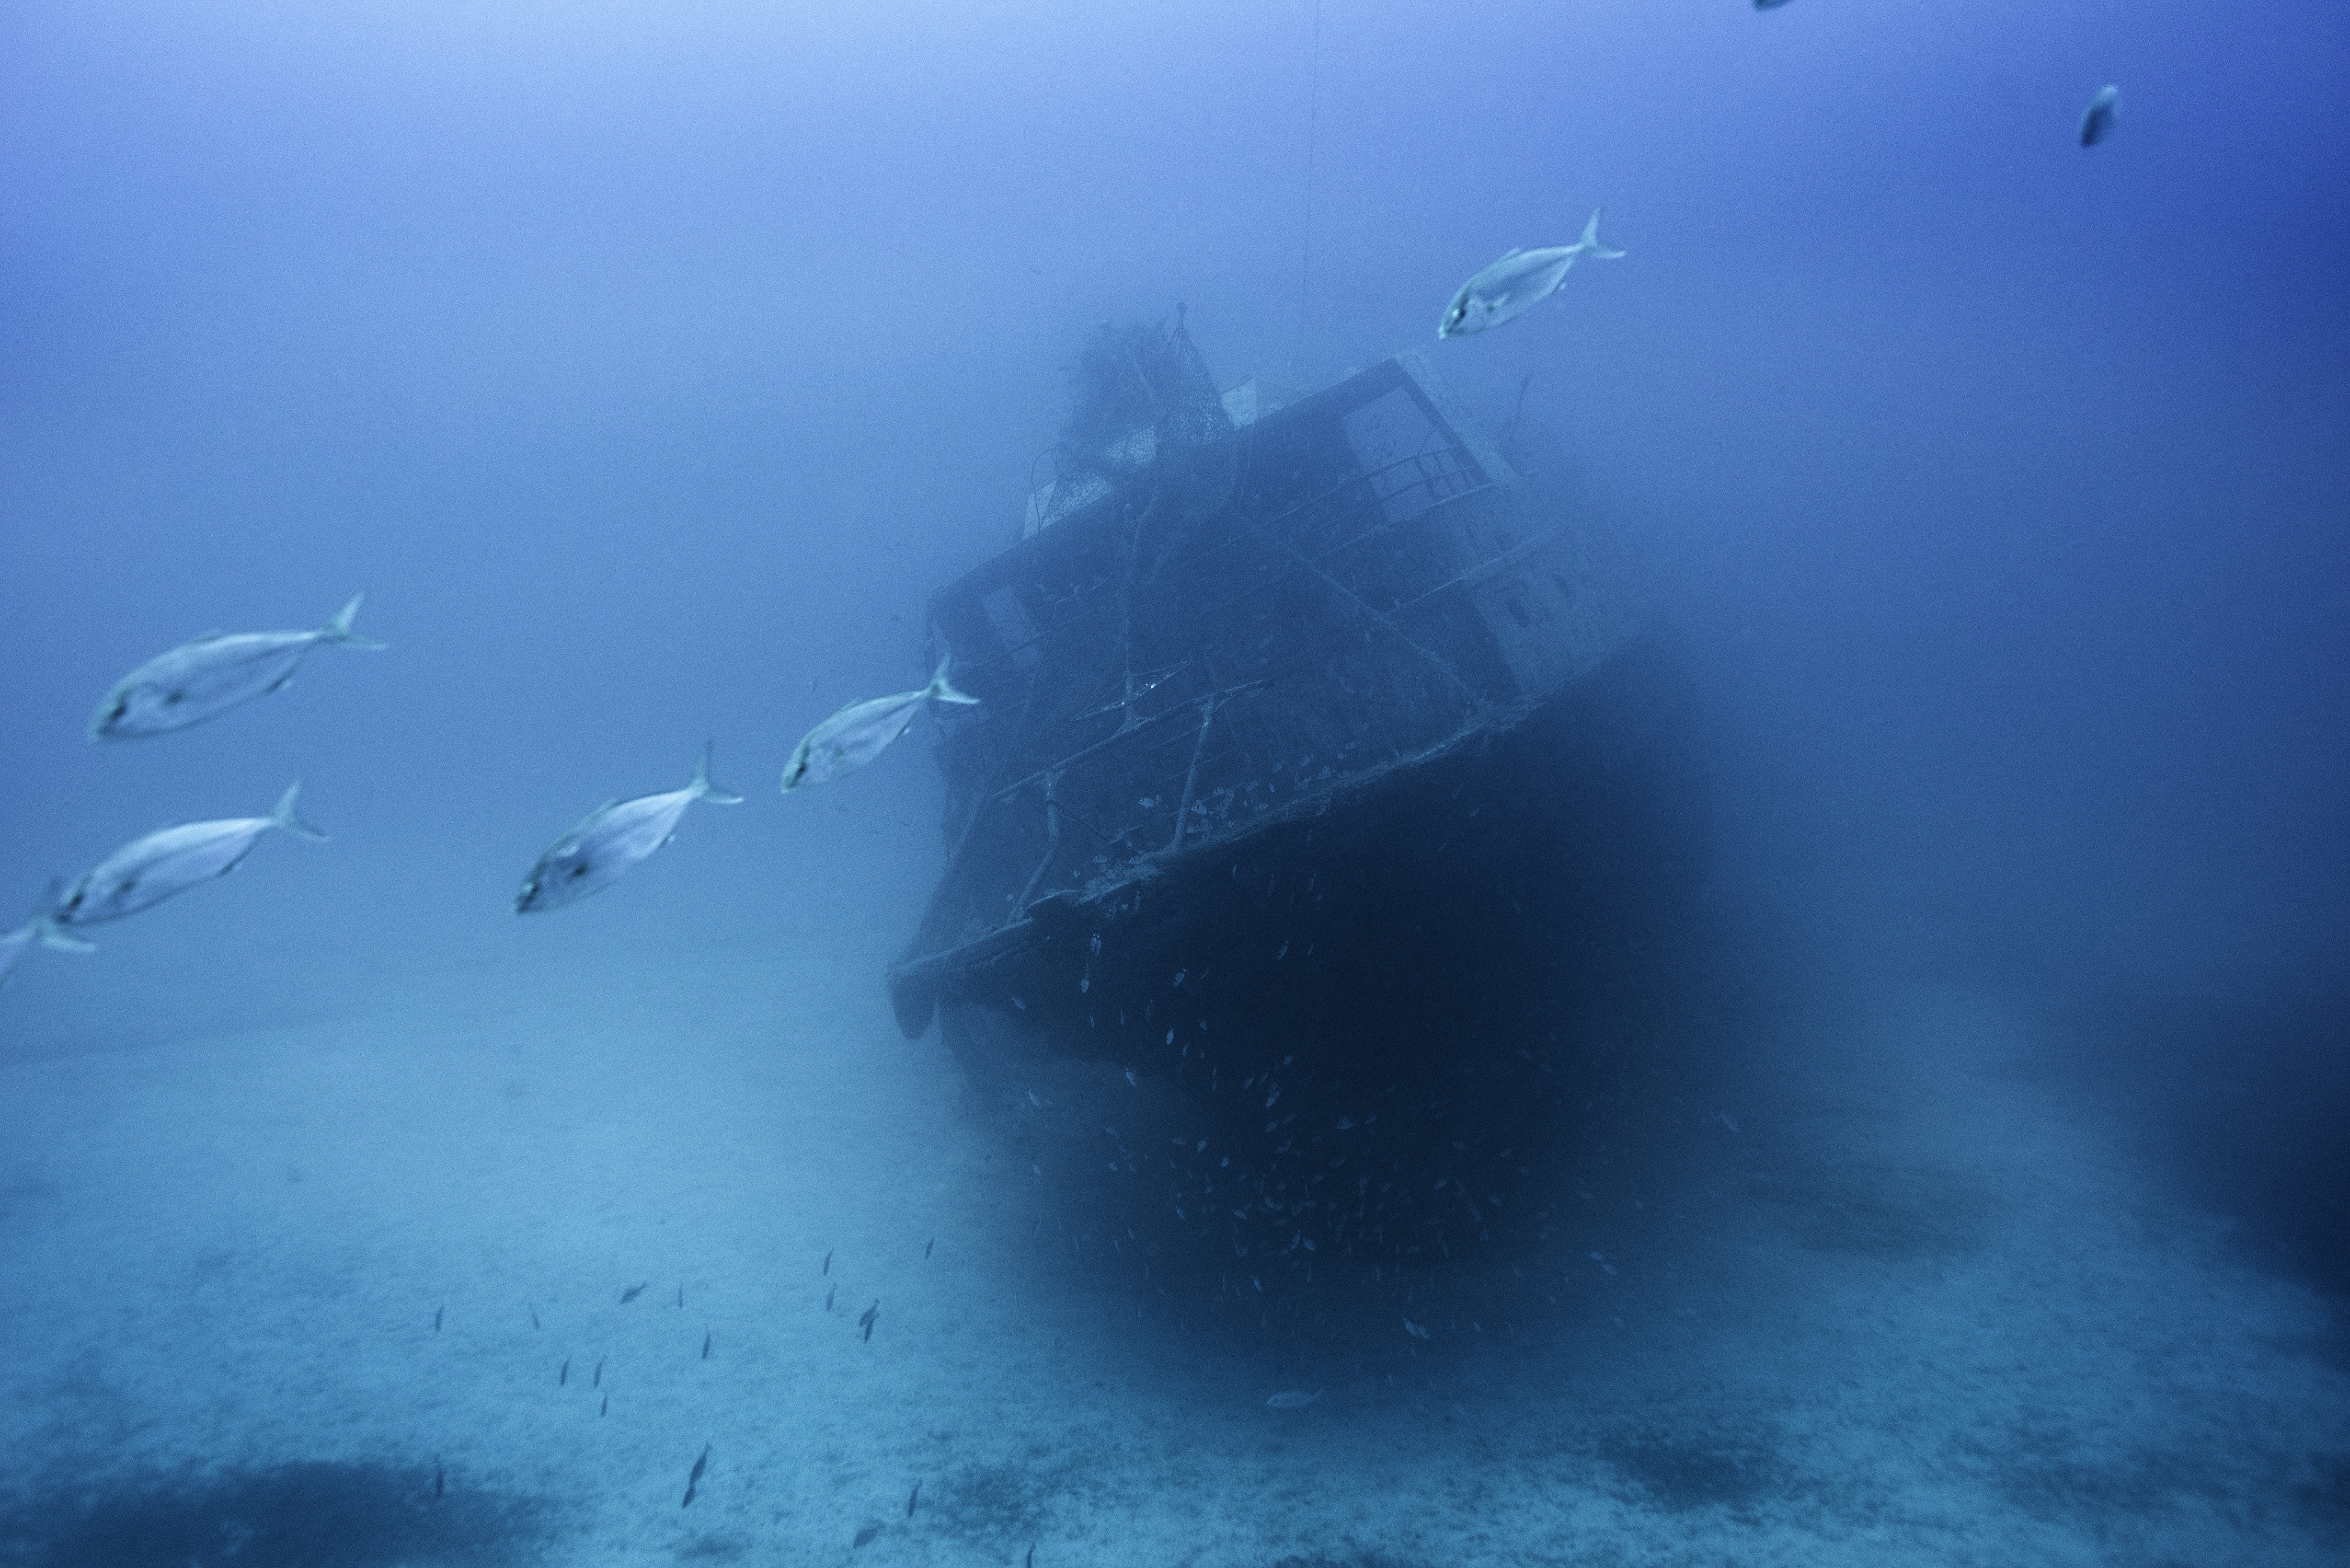 The shipwreck of the 66-foot-long fishing boat that sank off the coast of the Italian island of Lampedusa lies at a depth of 164 ft. on the seabed, on Sept. 22, 2014. The tragedy that happened a year ago on Oct. 3, 2013 killed 366 migrants from North Africa.